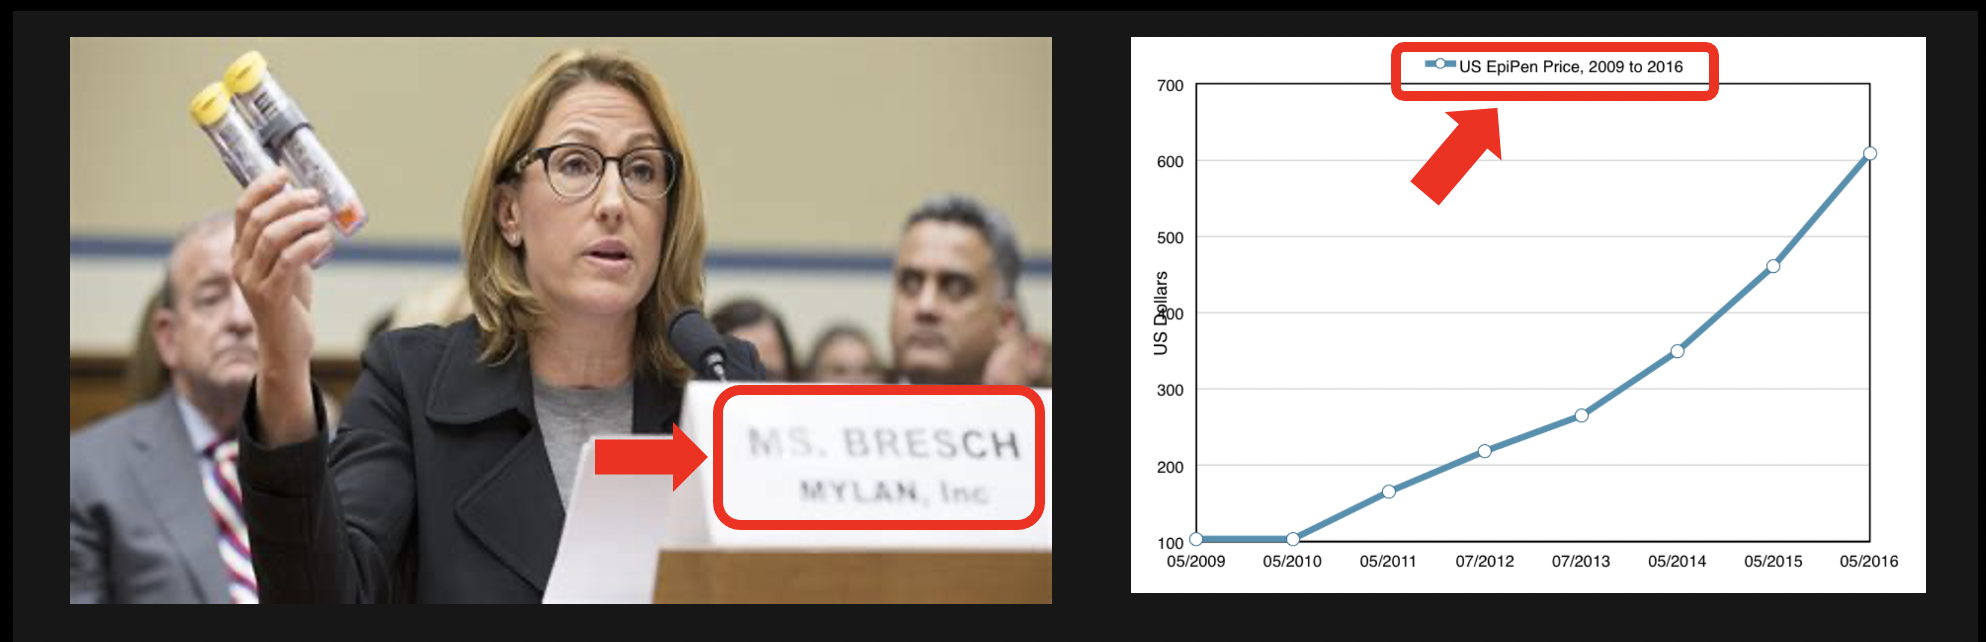 Ms Bresch and the Mylan Epipen. Follow the money to see how big donors influence politicians to get laws passed that make them even richer - and block bills like Build Back Better that help working Americans.